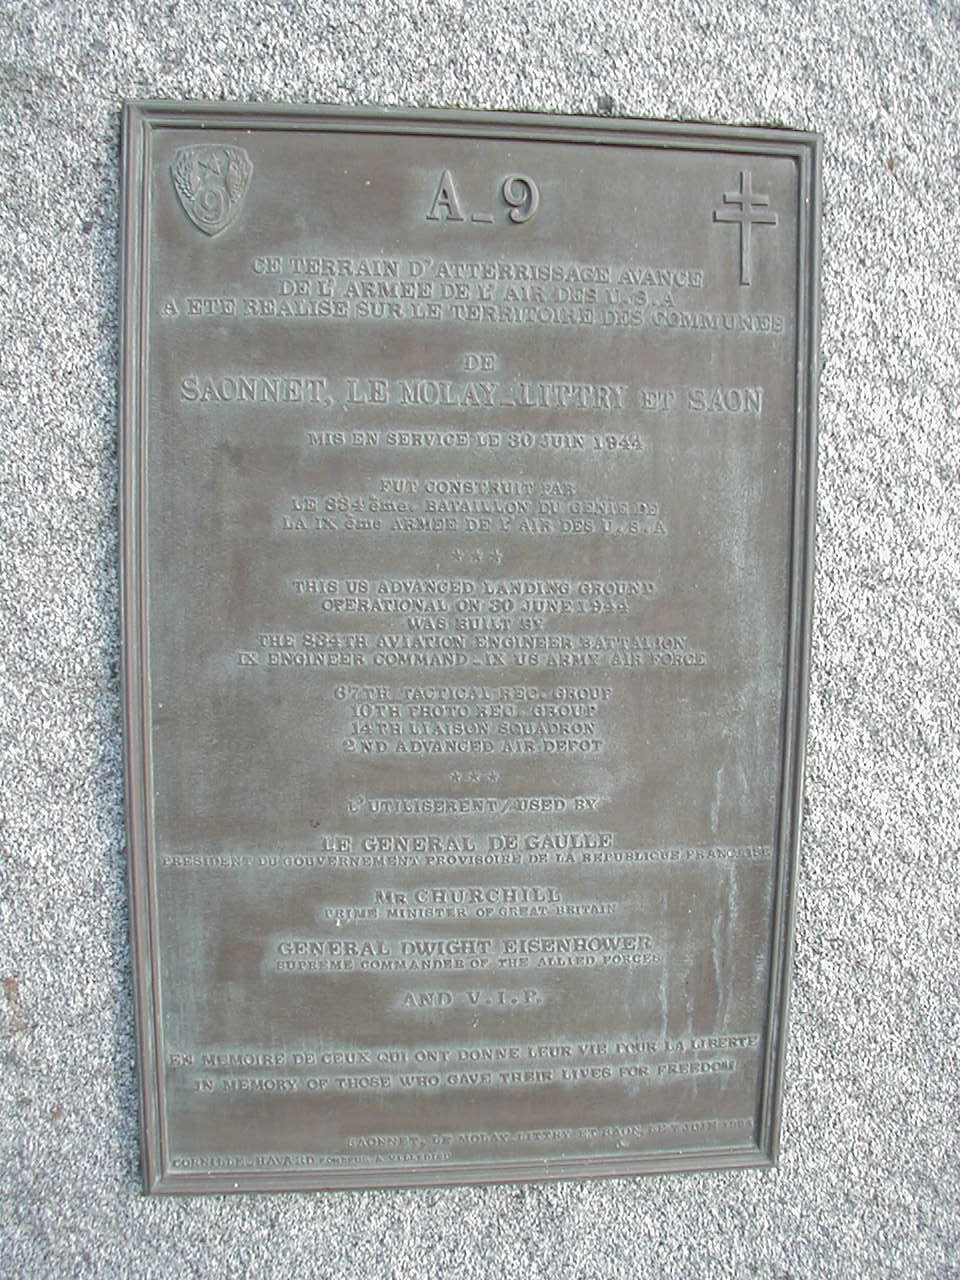 Memorial A閞odrome US A-9 Le Molay-Littry Le Molay-Littry Calvados (14)